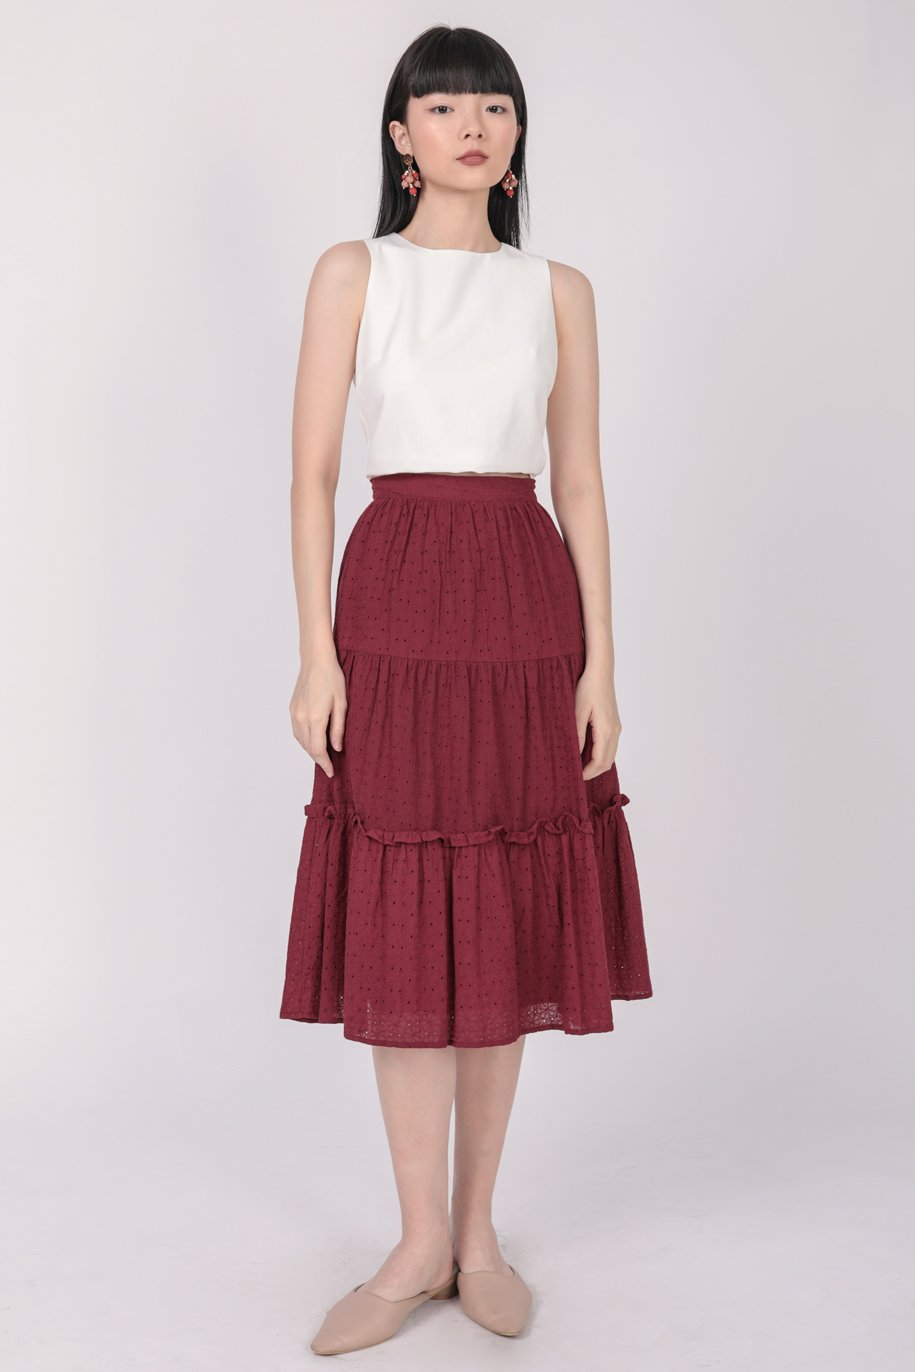 Beverly Tiered Skirt (Maroon Eyelet)